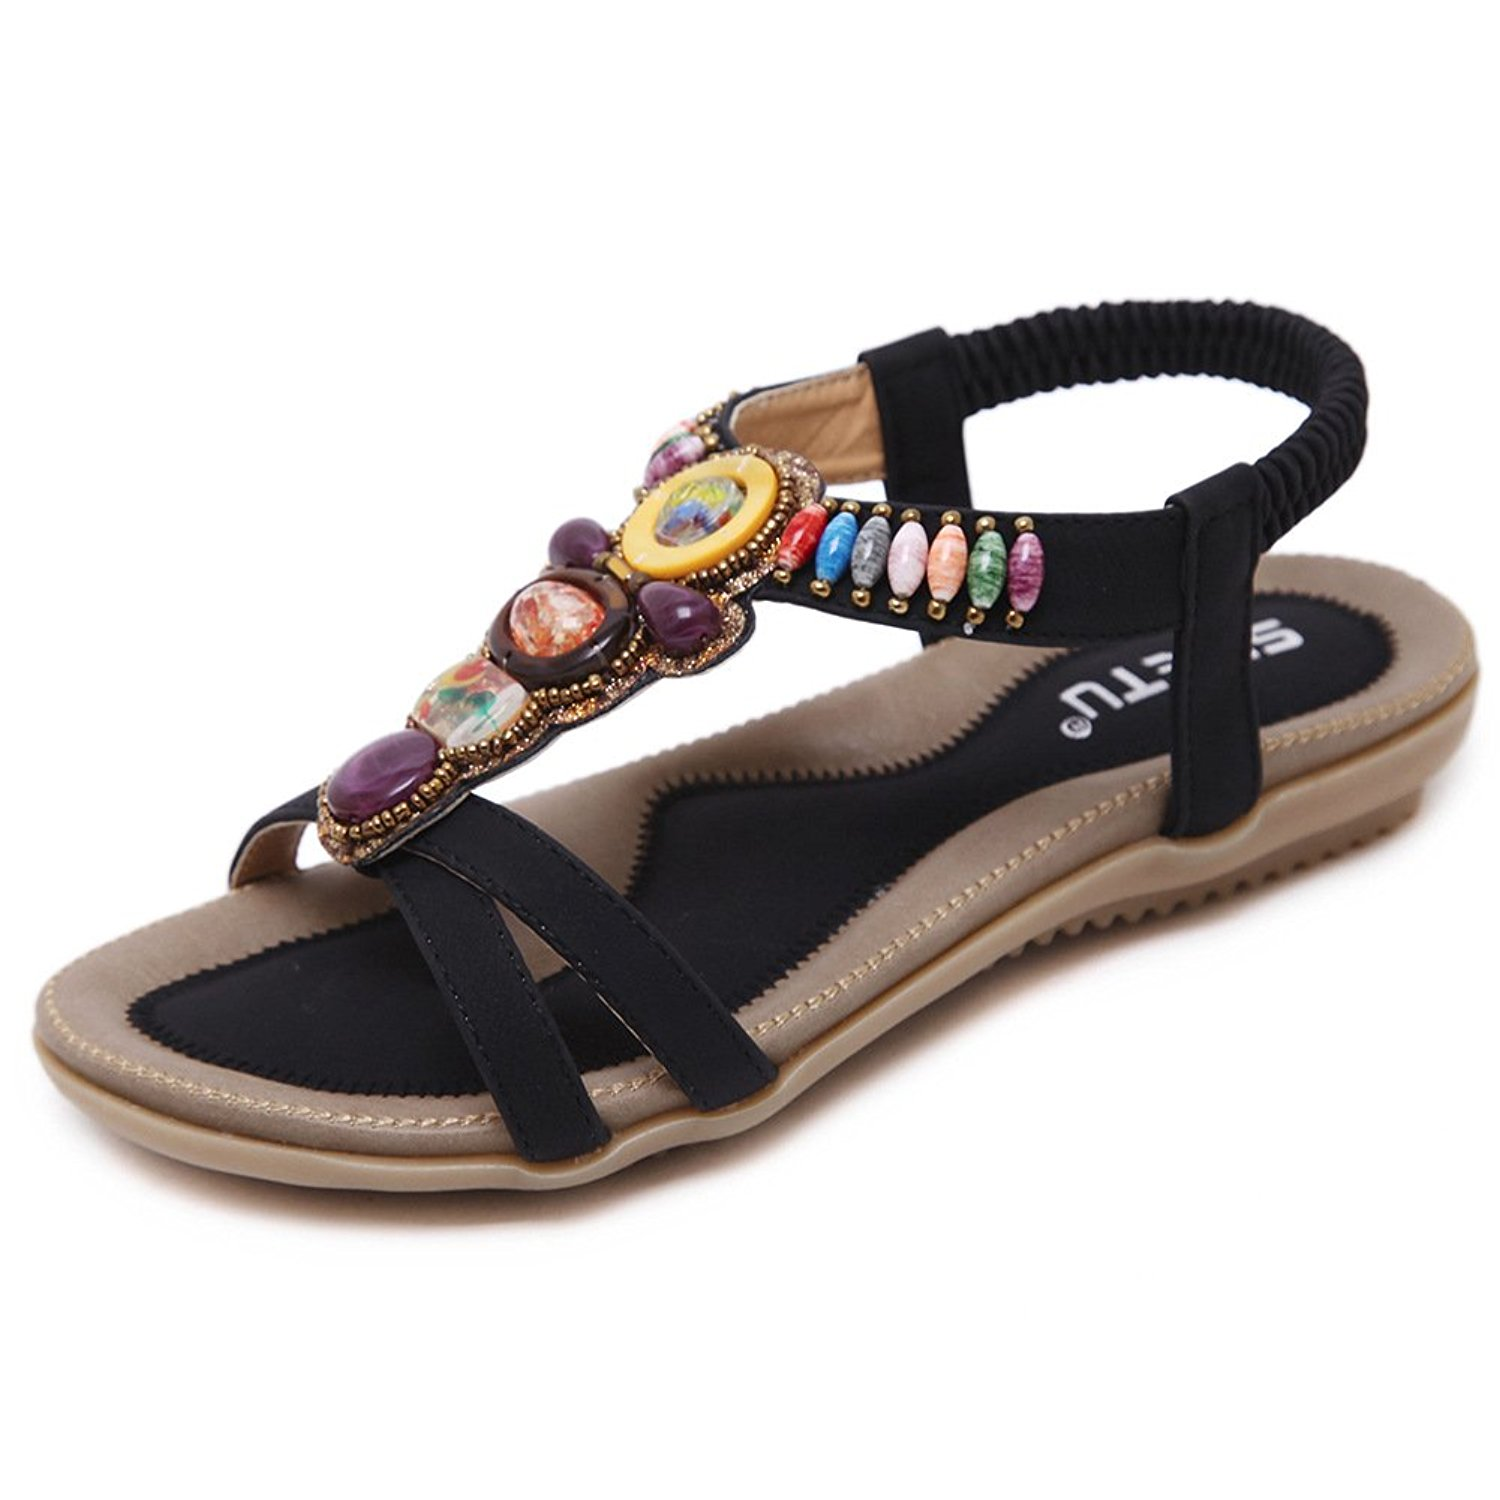 51f6d70c0b345 Get Quotations · SWQZVT Women s Beaded Rhinestone Bohemian Gladiator Summer  T-Strap Flat Sandals Elastic Beach Flip Flops